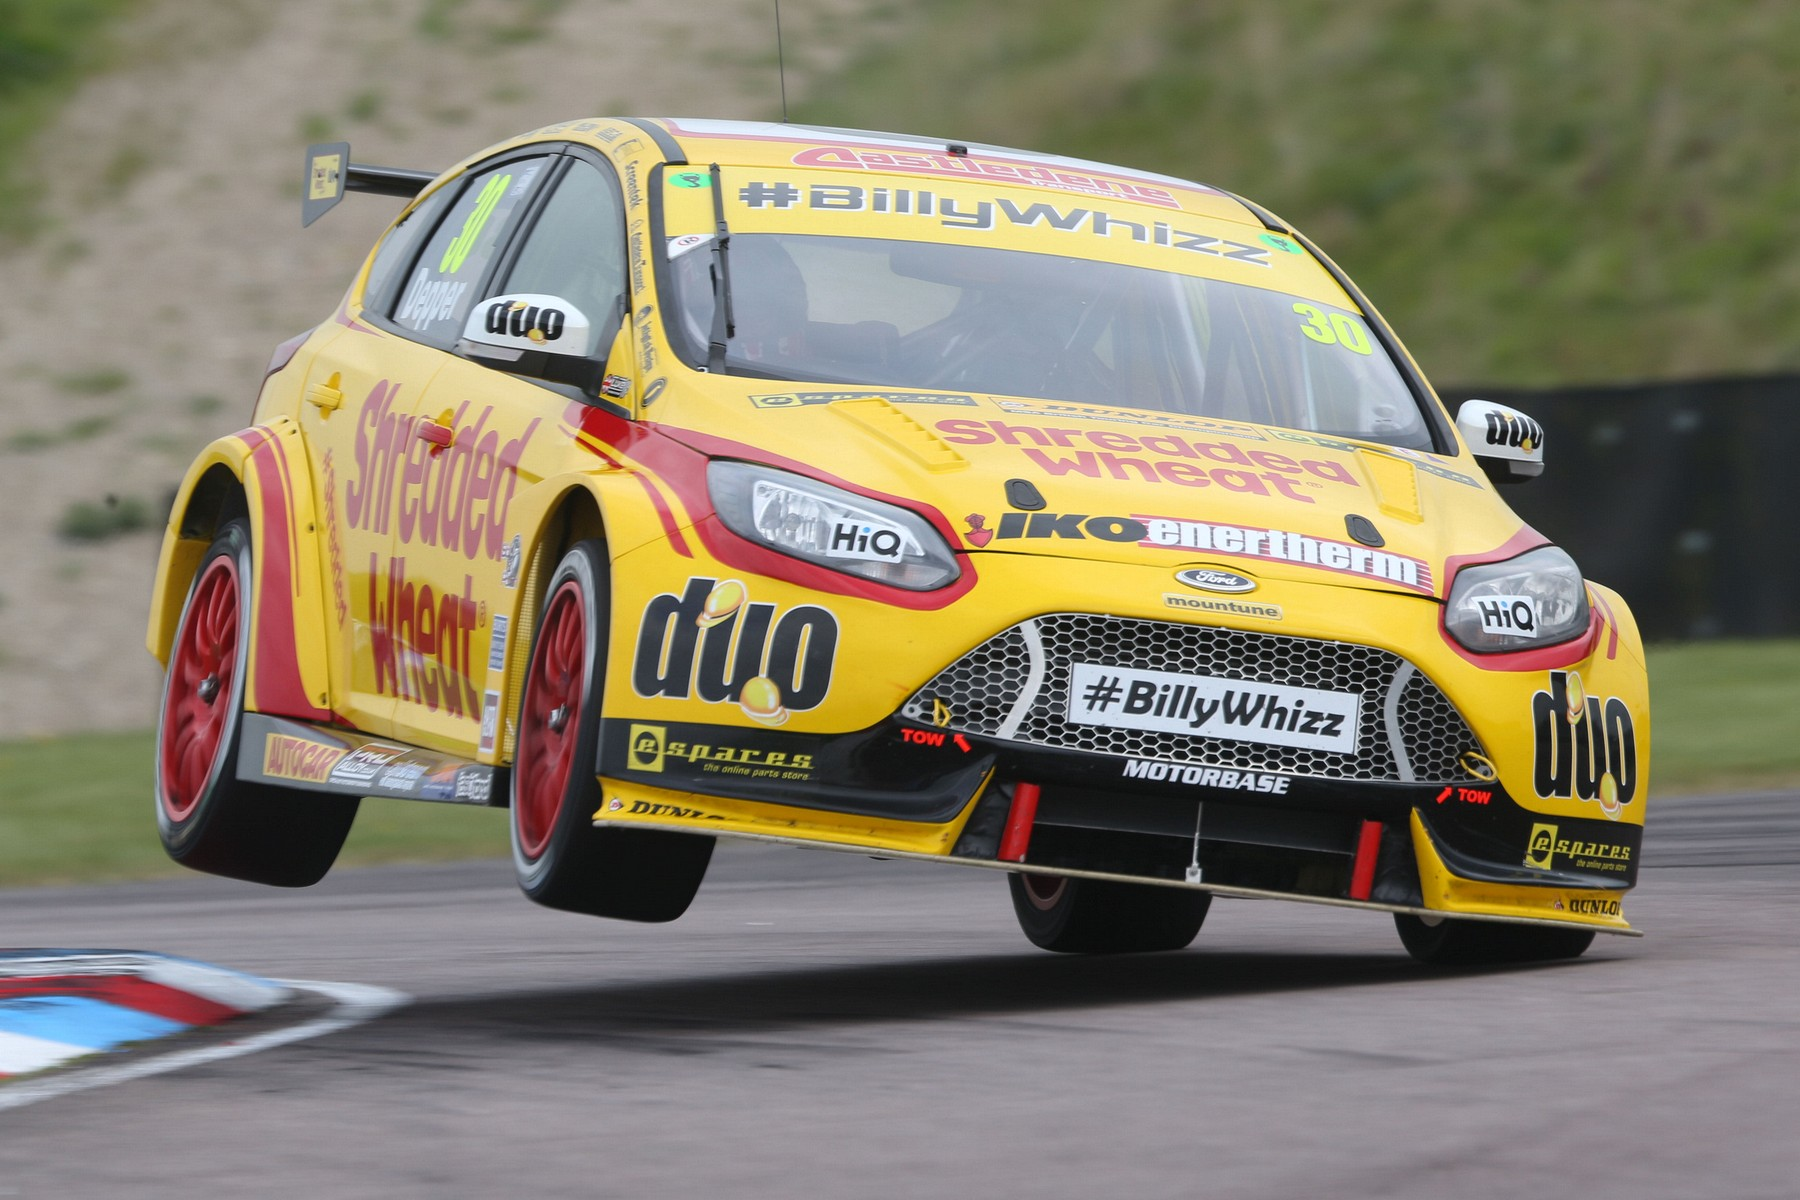 British Touring Car Championships: A day out for the family?